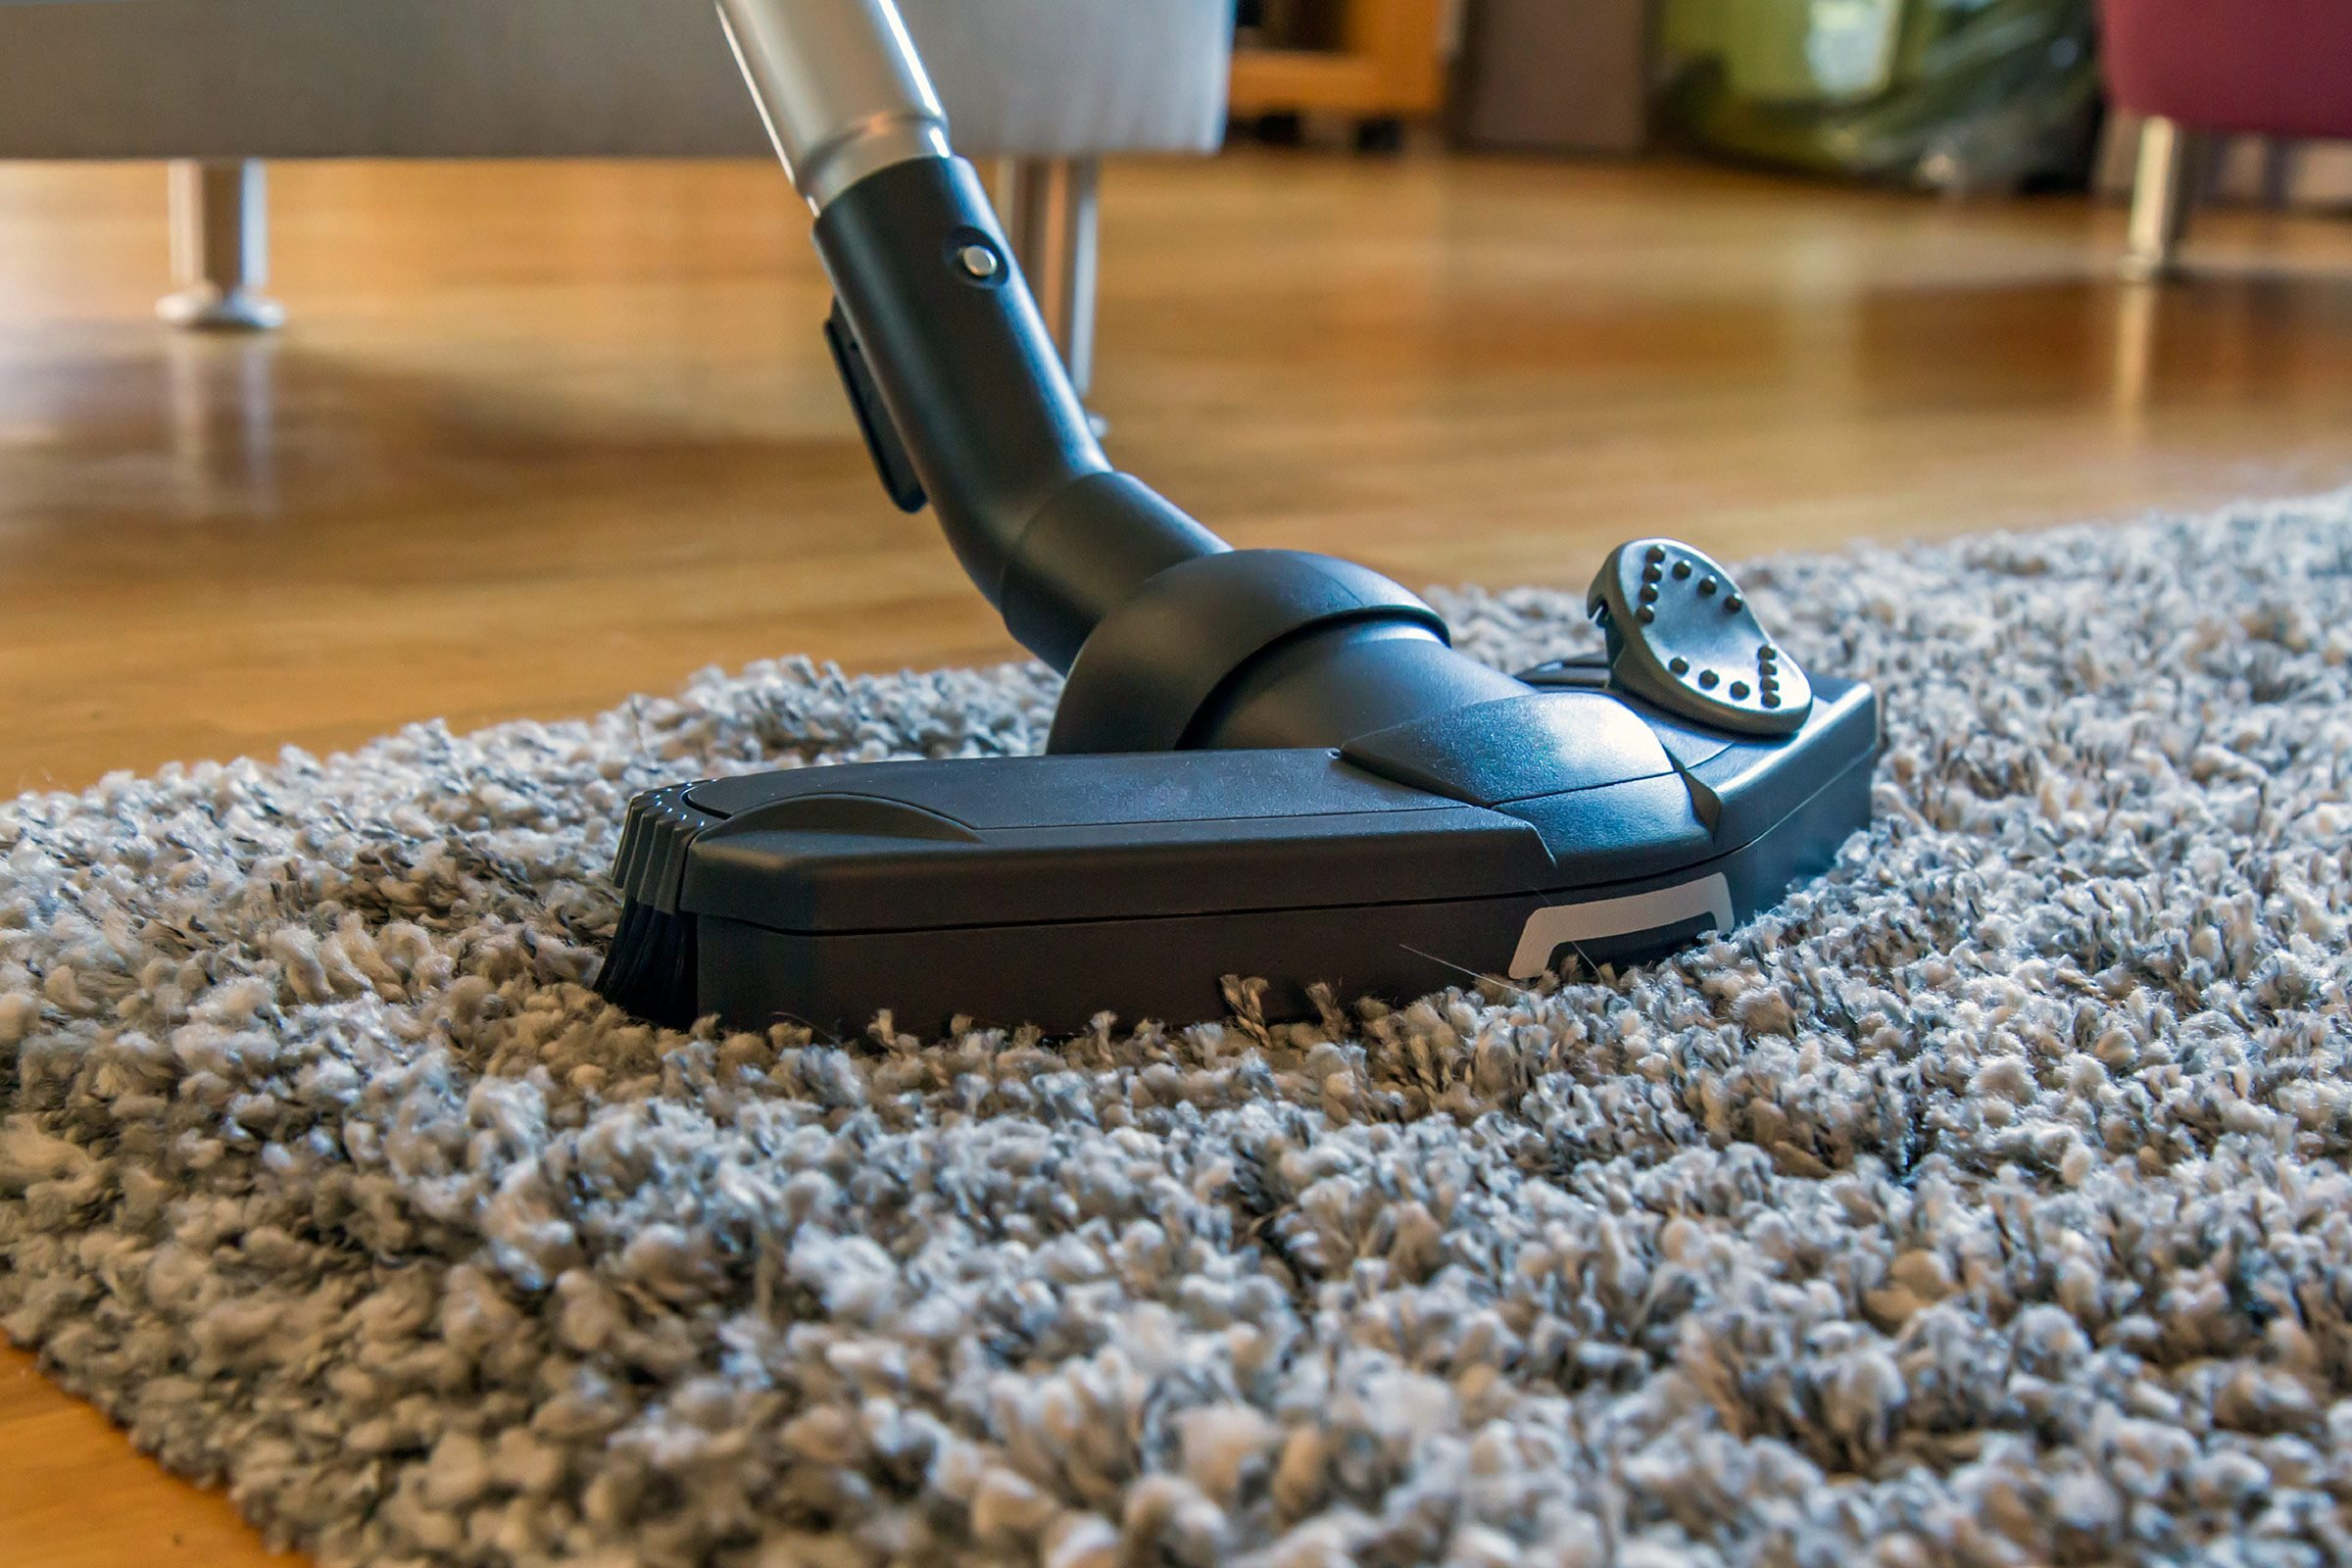 Image result for Why Carpet Cleaning is Necessary istock